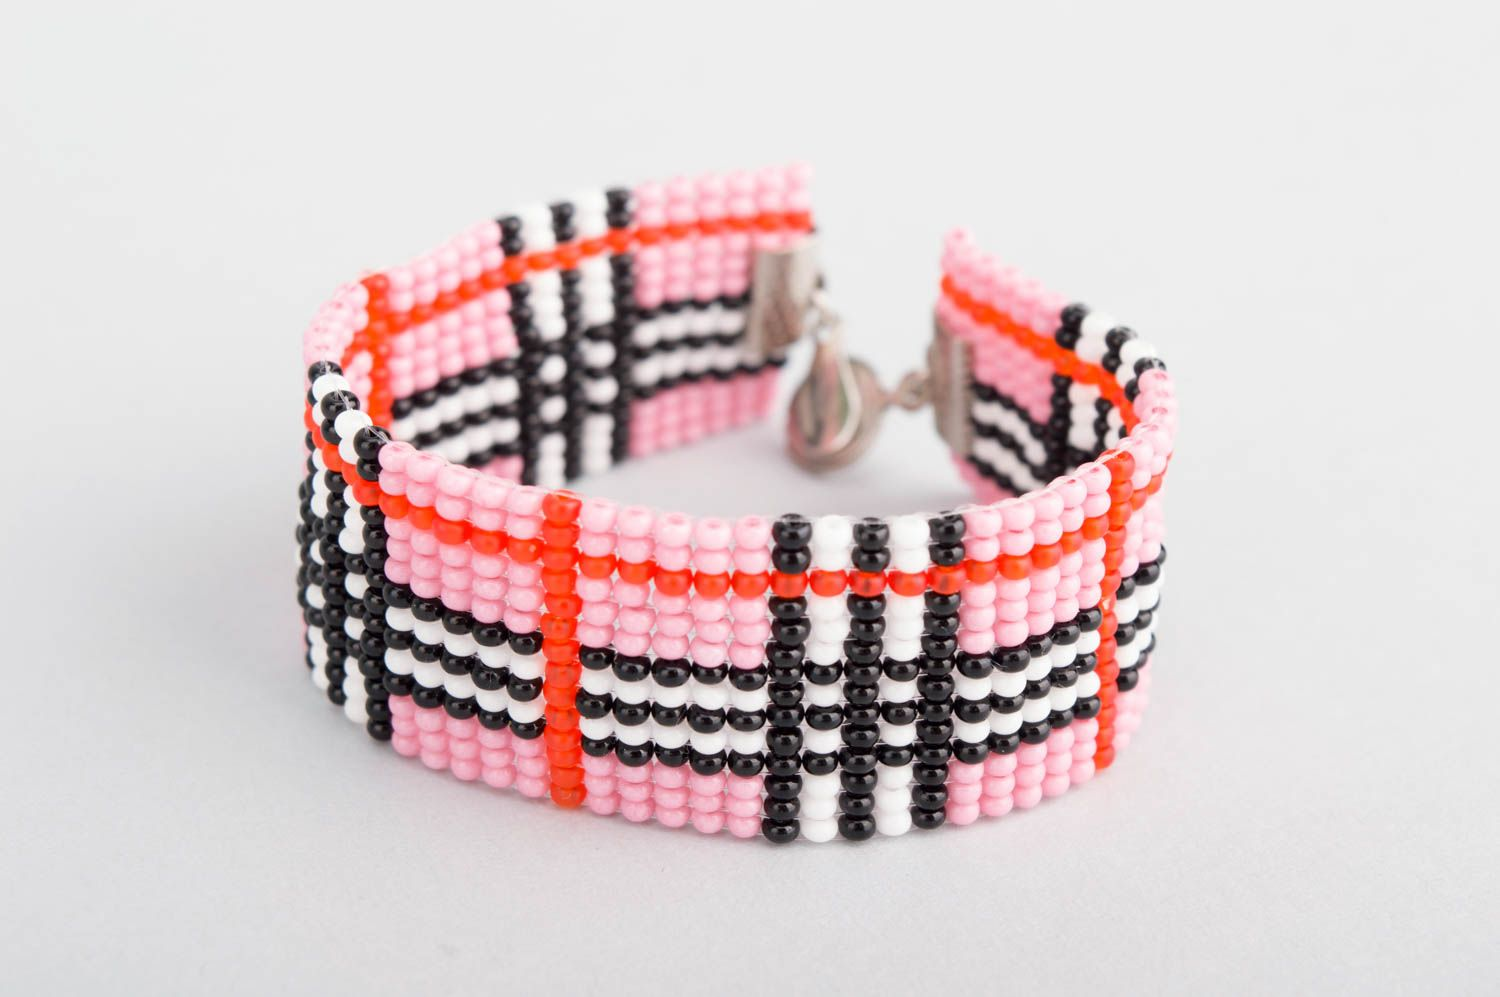 Homemade jewelry beaded bracelet bead jewelry kids accessories gifts for girls  photo 3